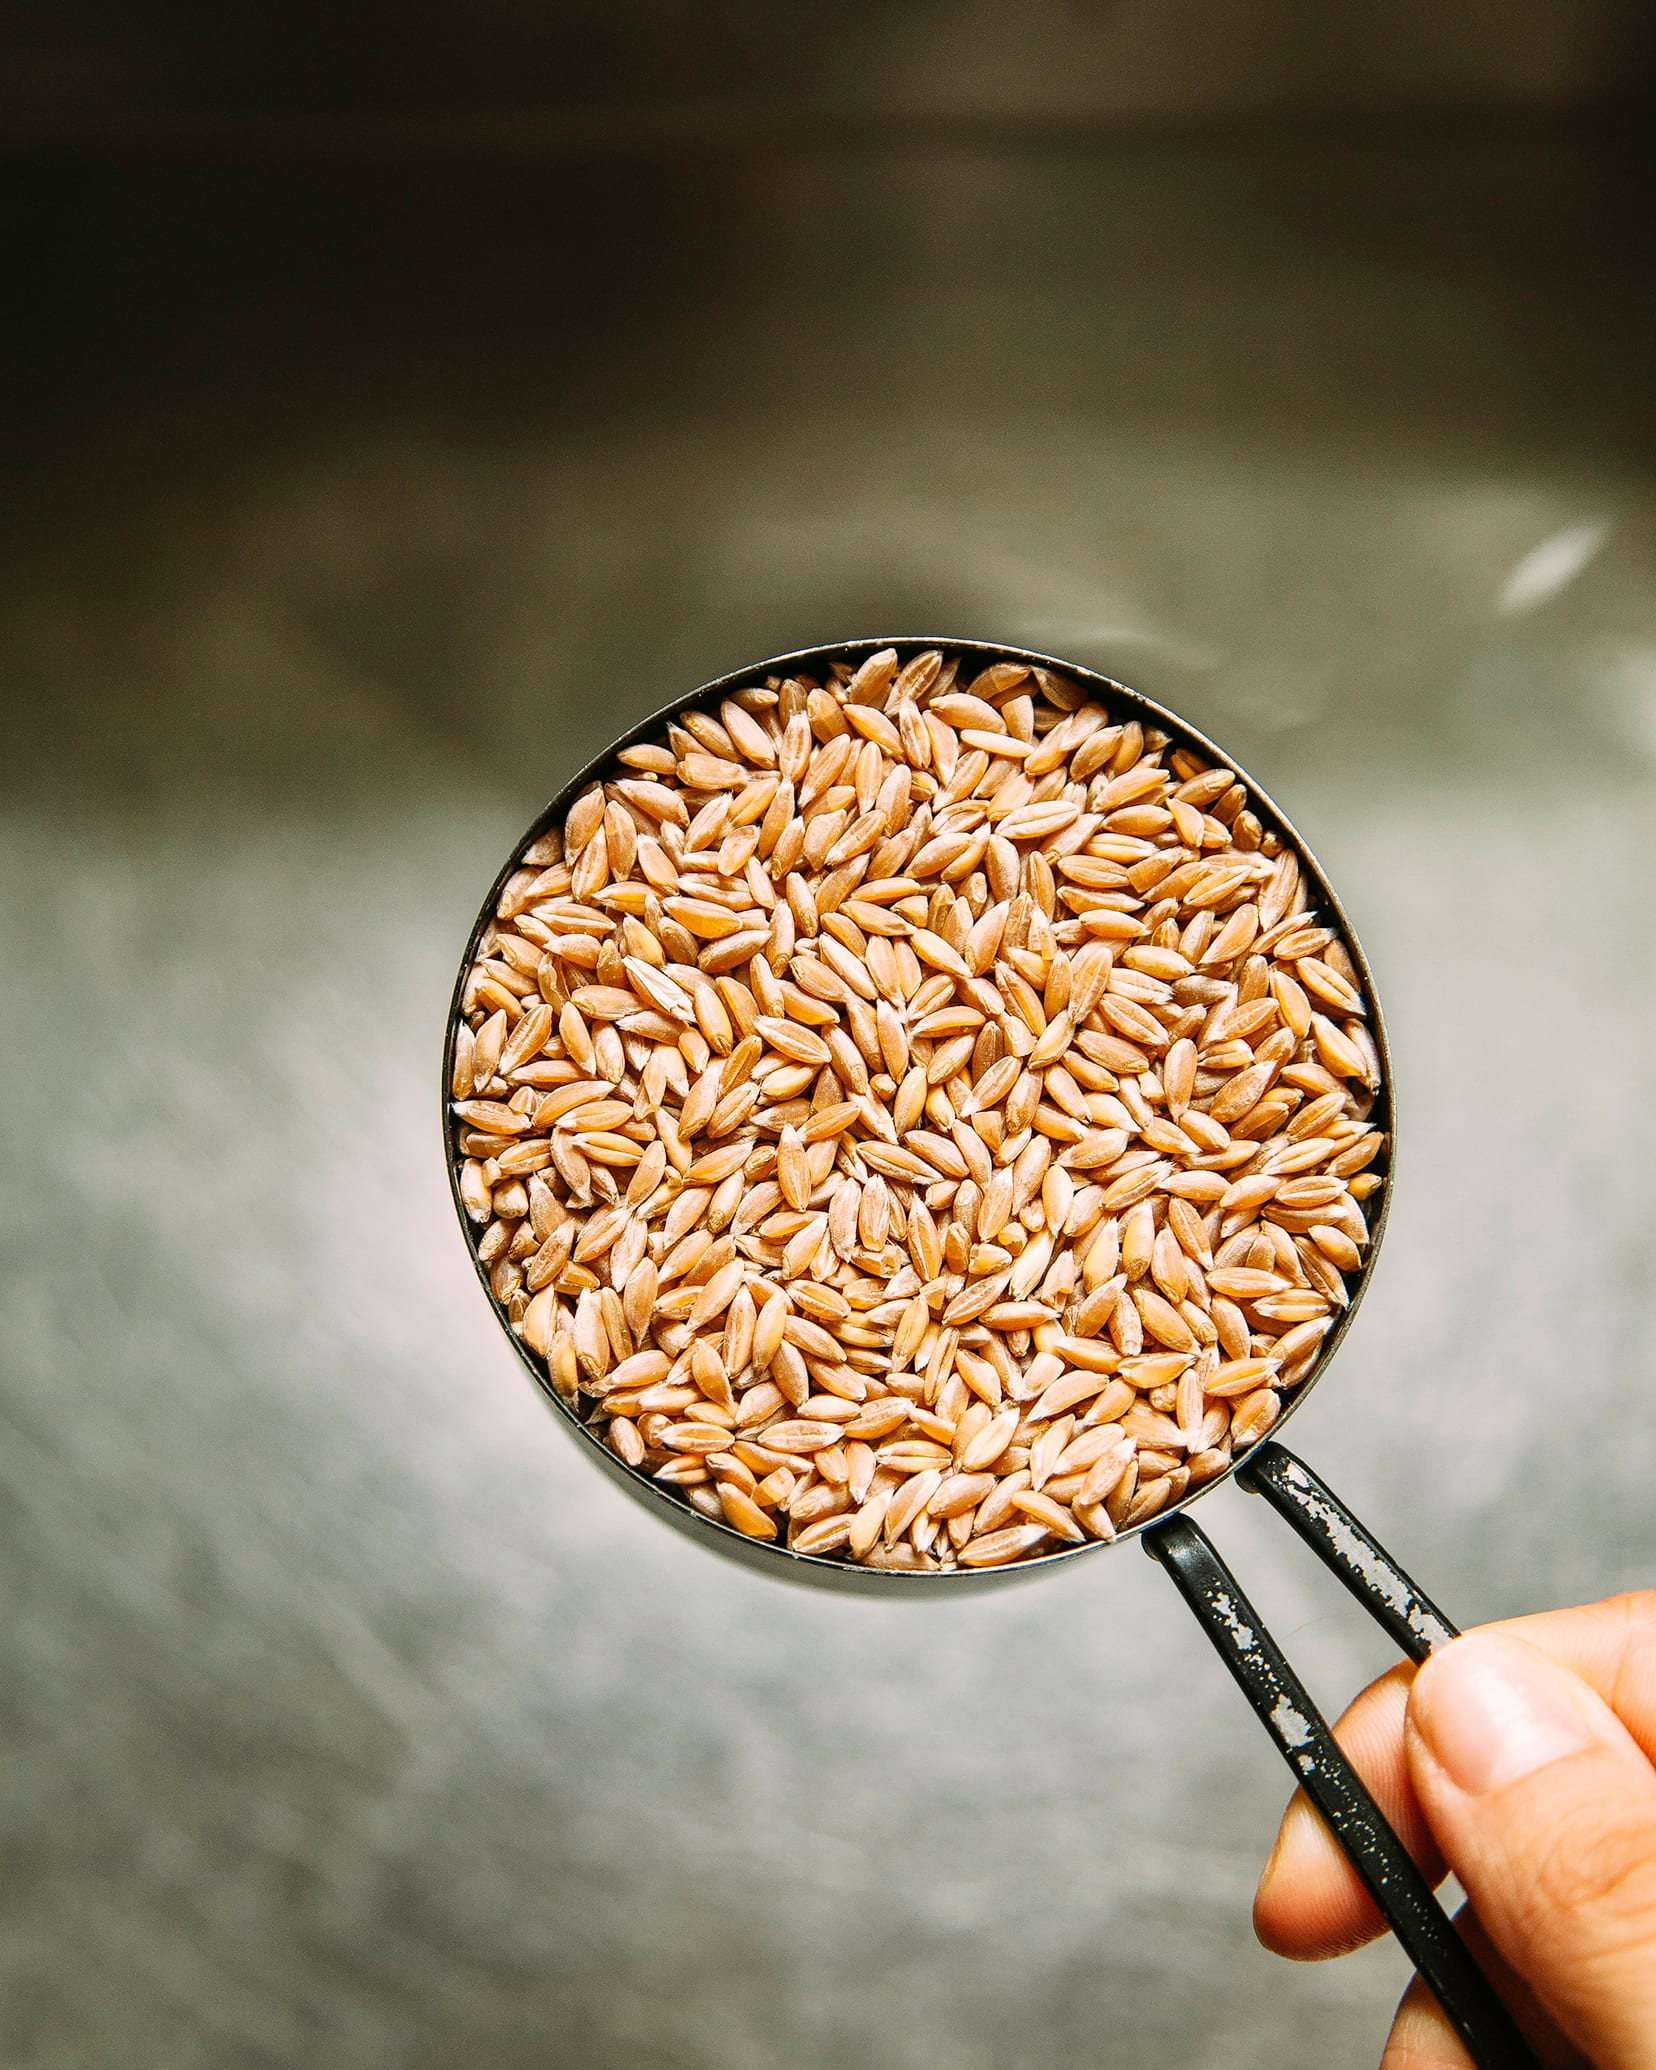 A hand is holding a measuring cup of dry farro.